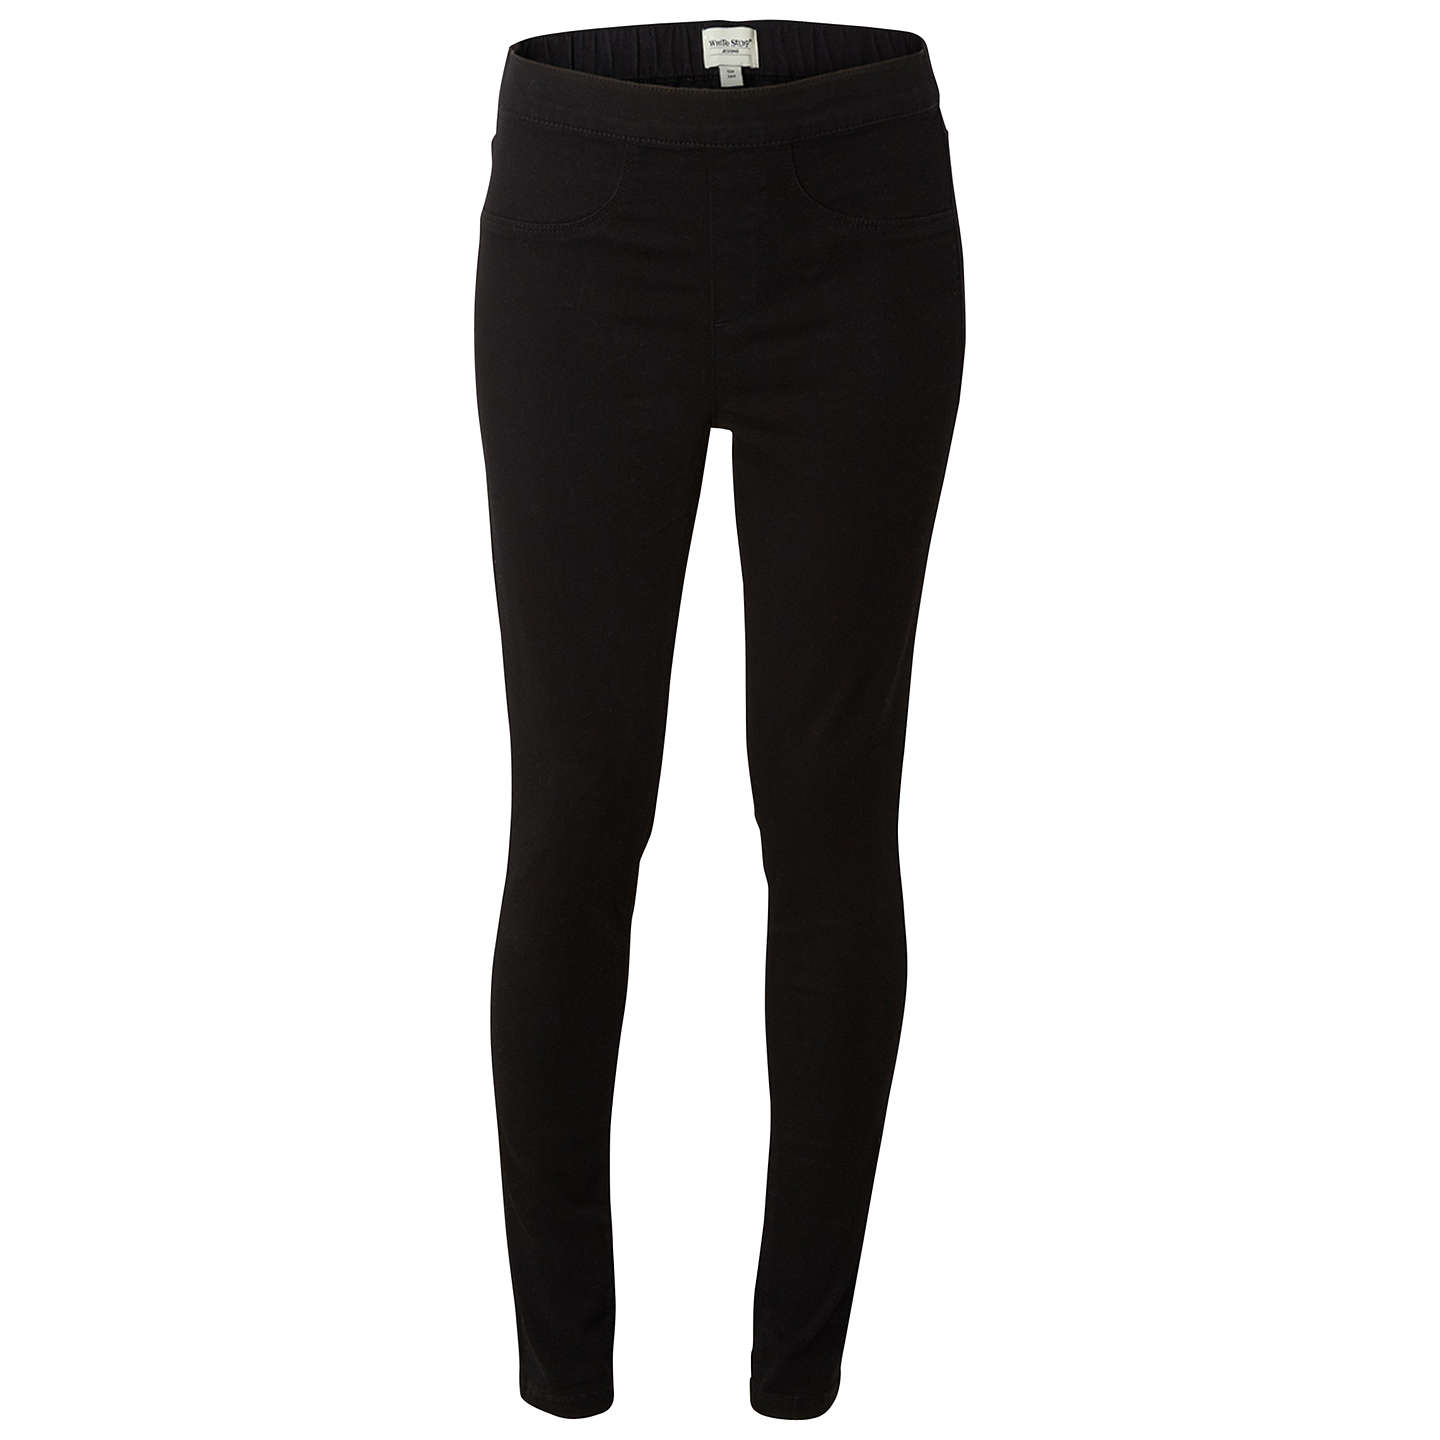 BuyWhite Stuff Jegging Jeans, Black, 6S Online at johnlewis.com